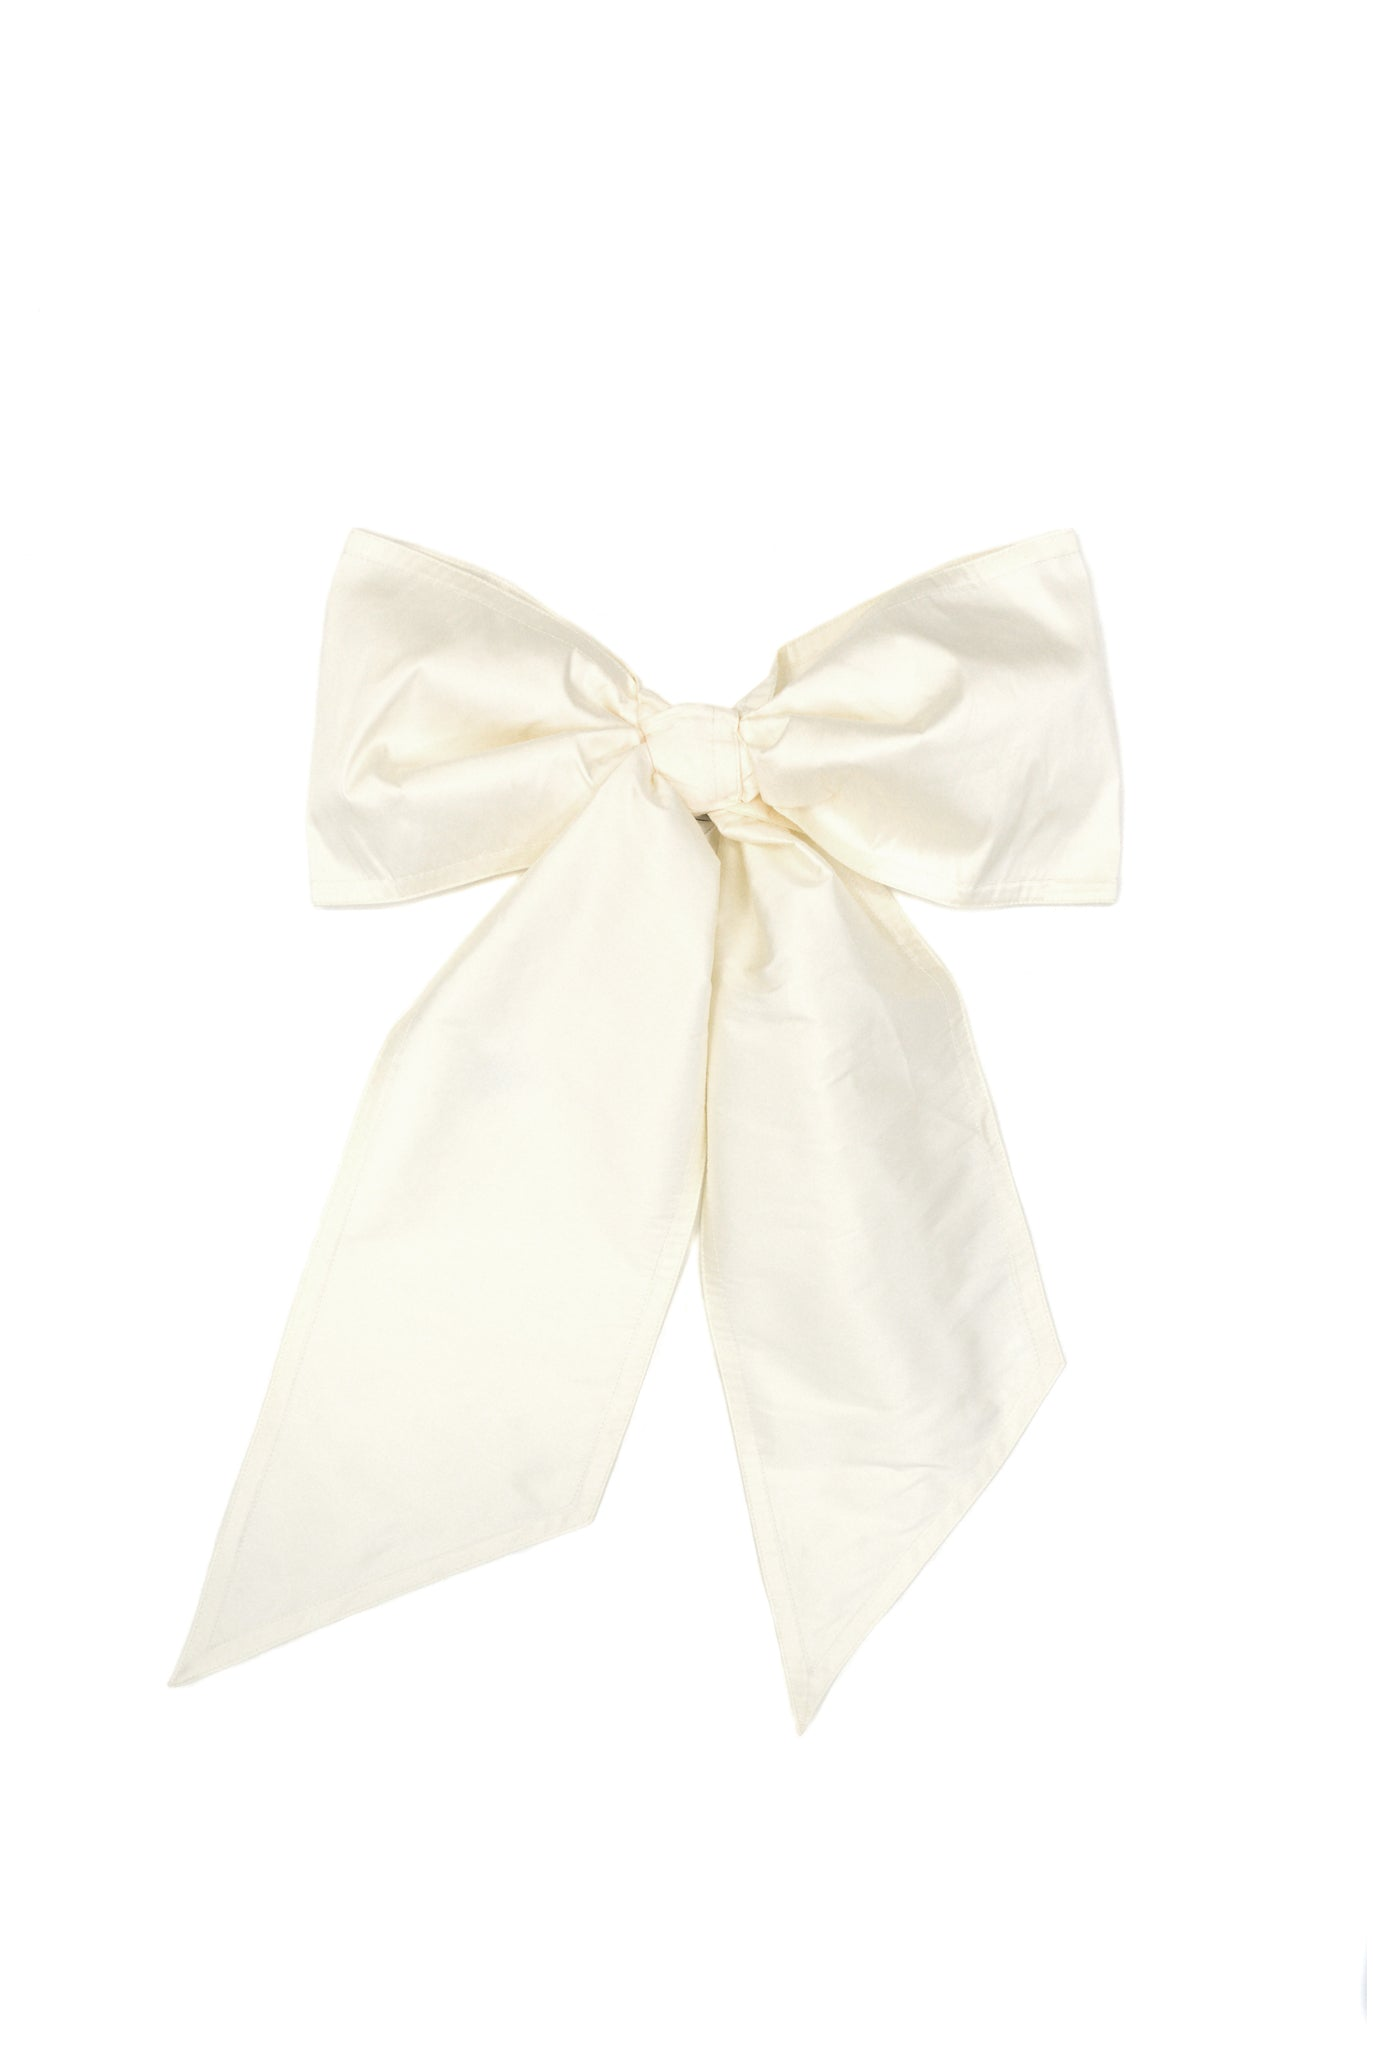 Vaquera Giant Hair Bow, Ivory